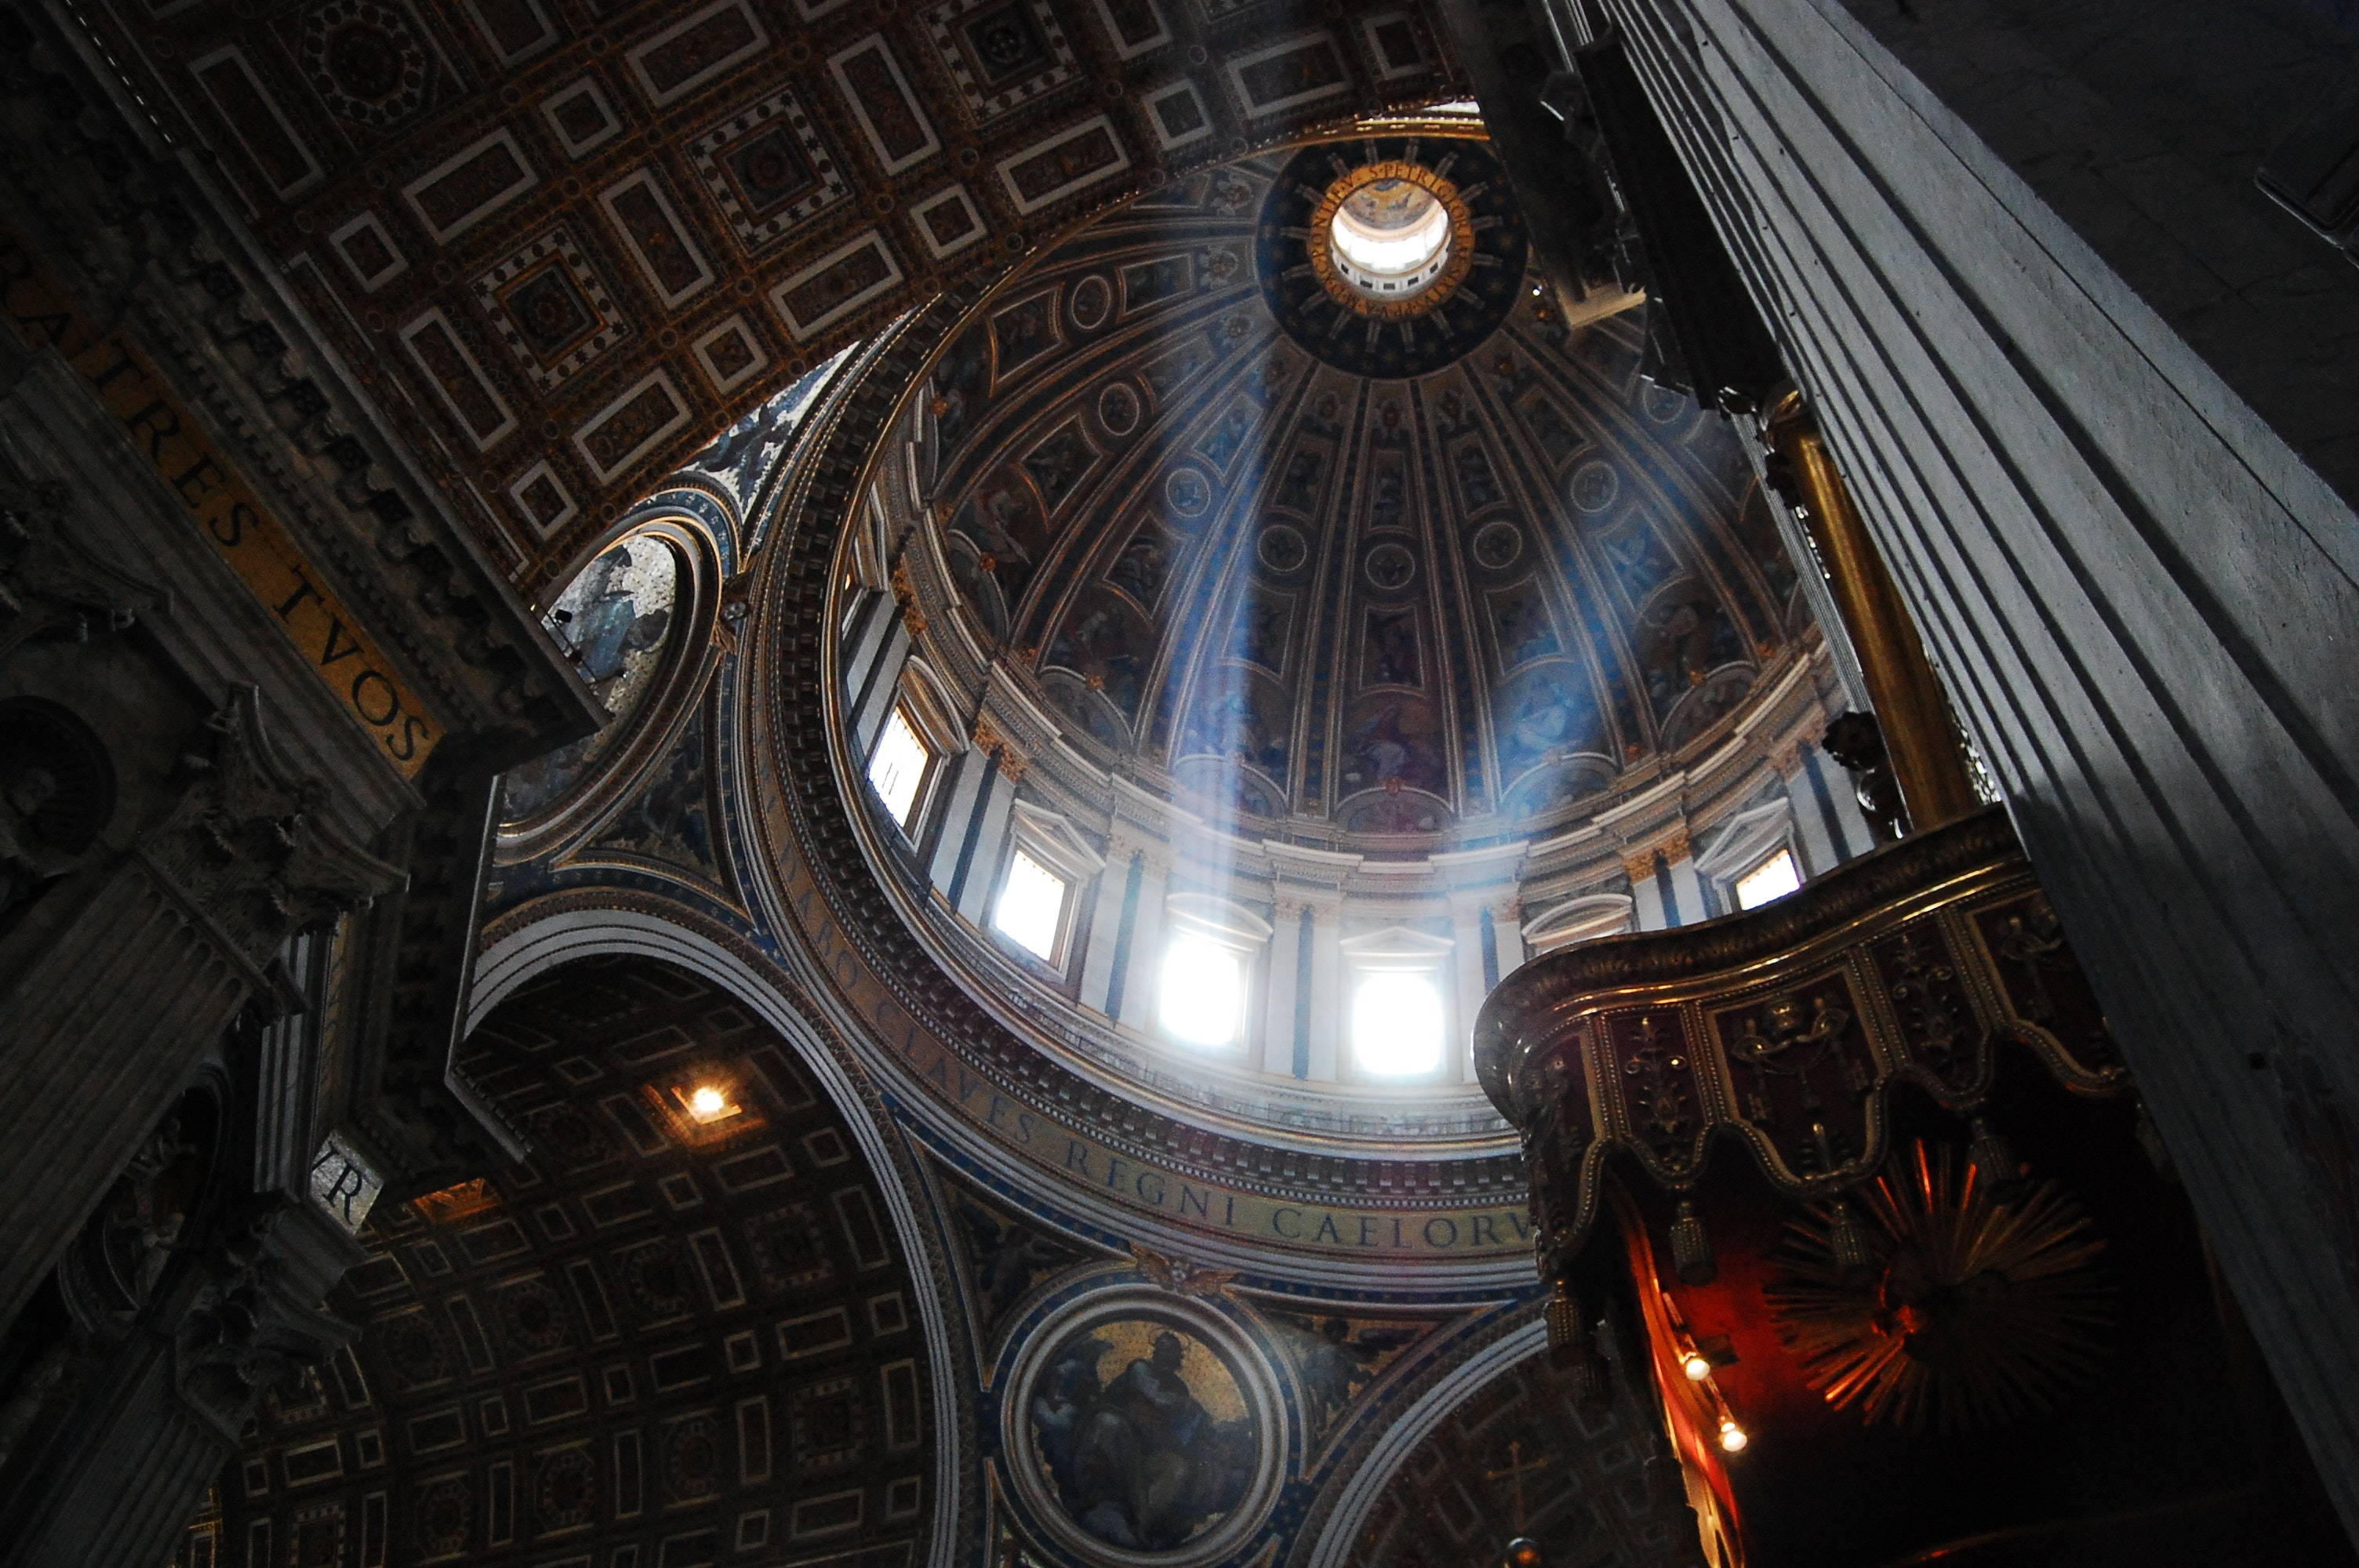 Low-angle photo inside of a cathedral